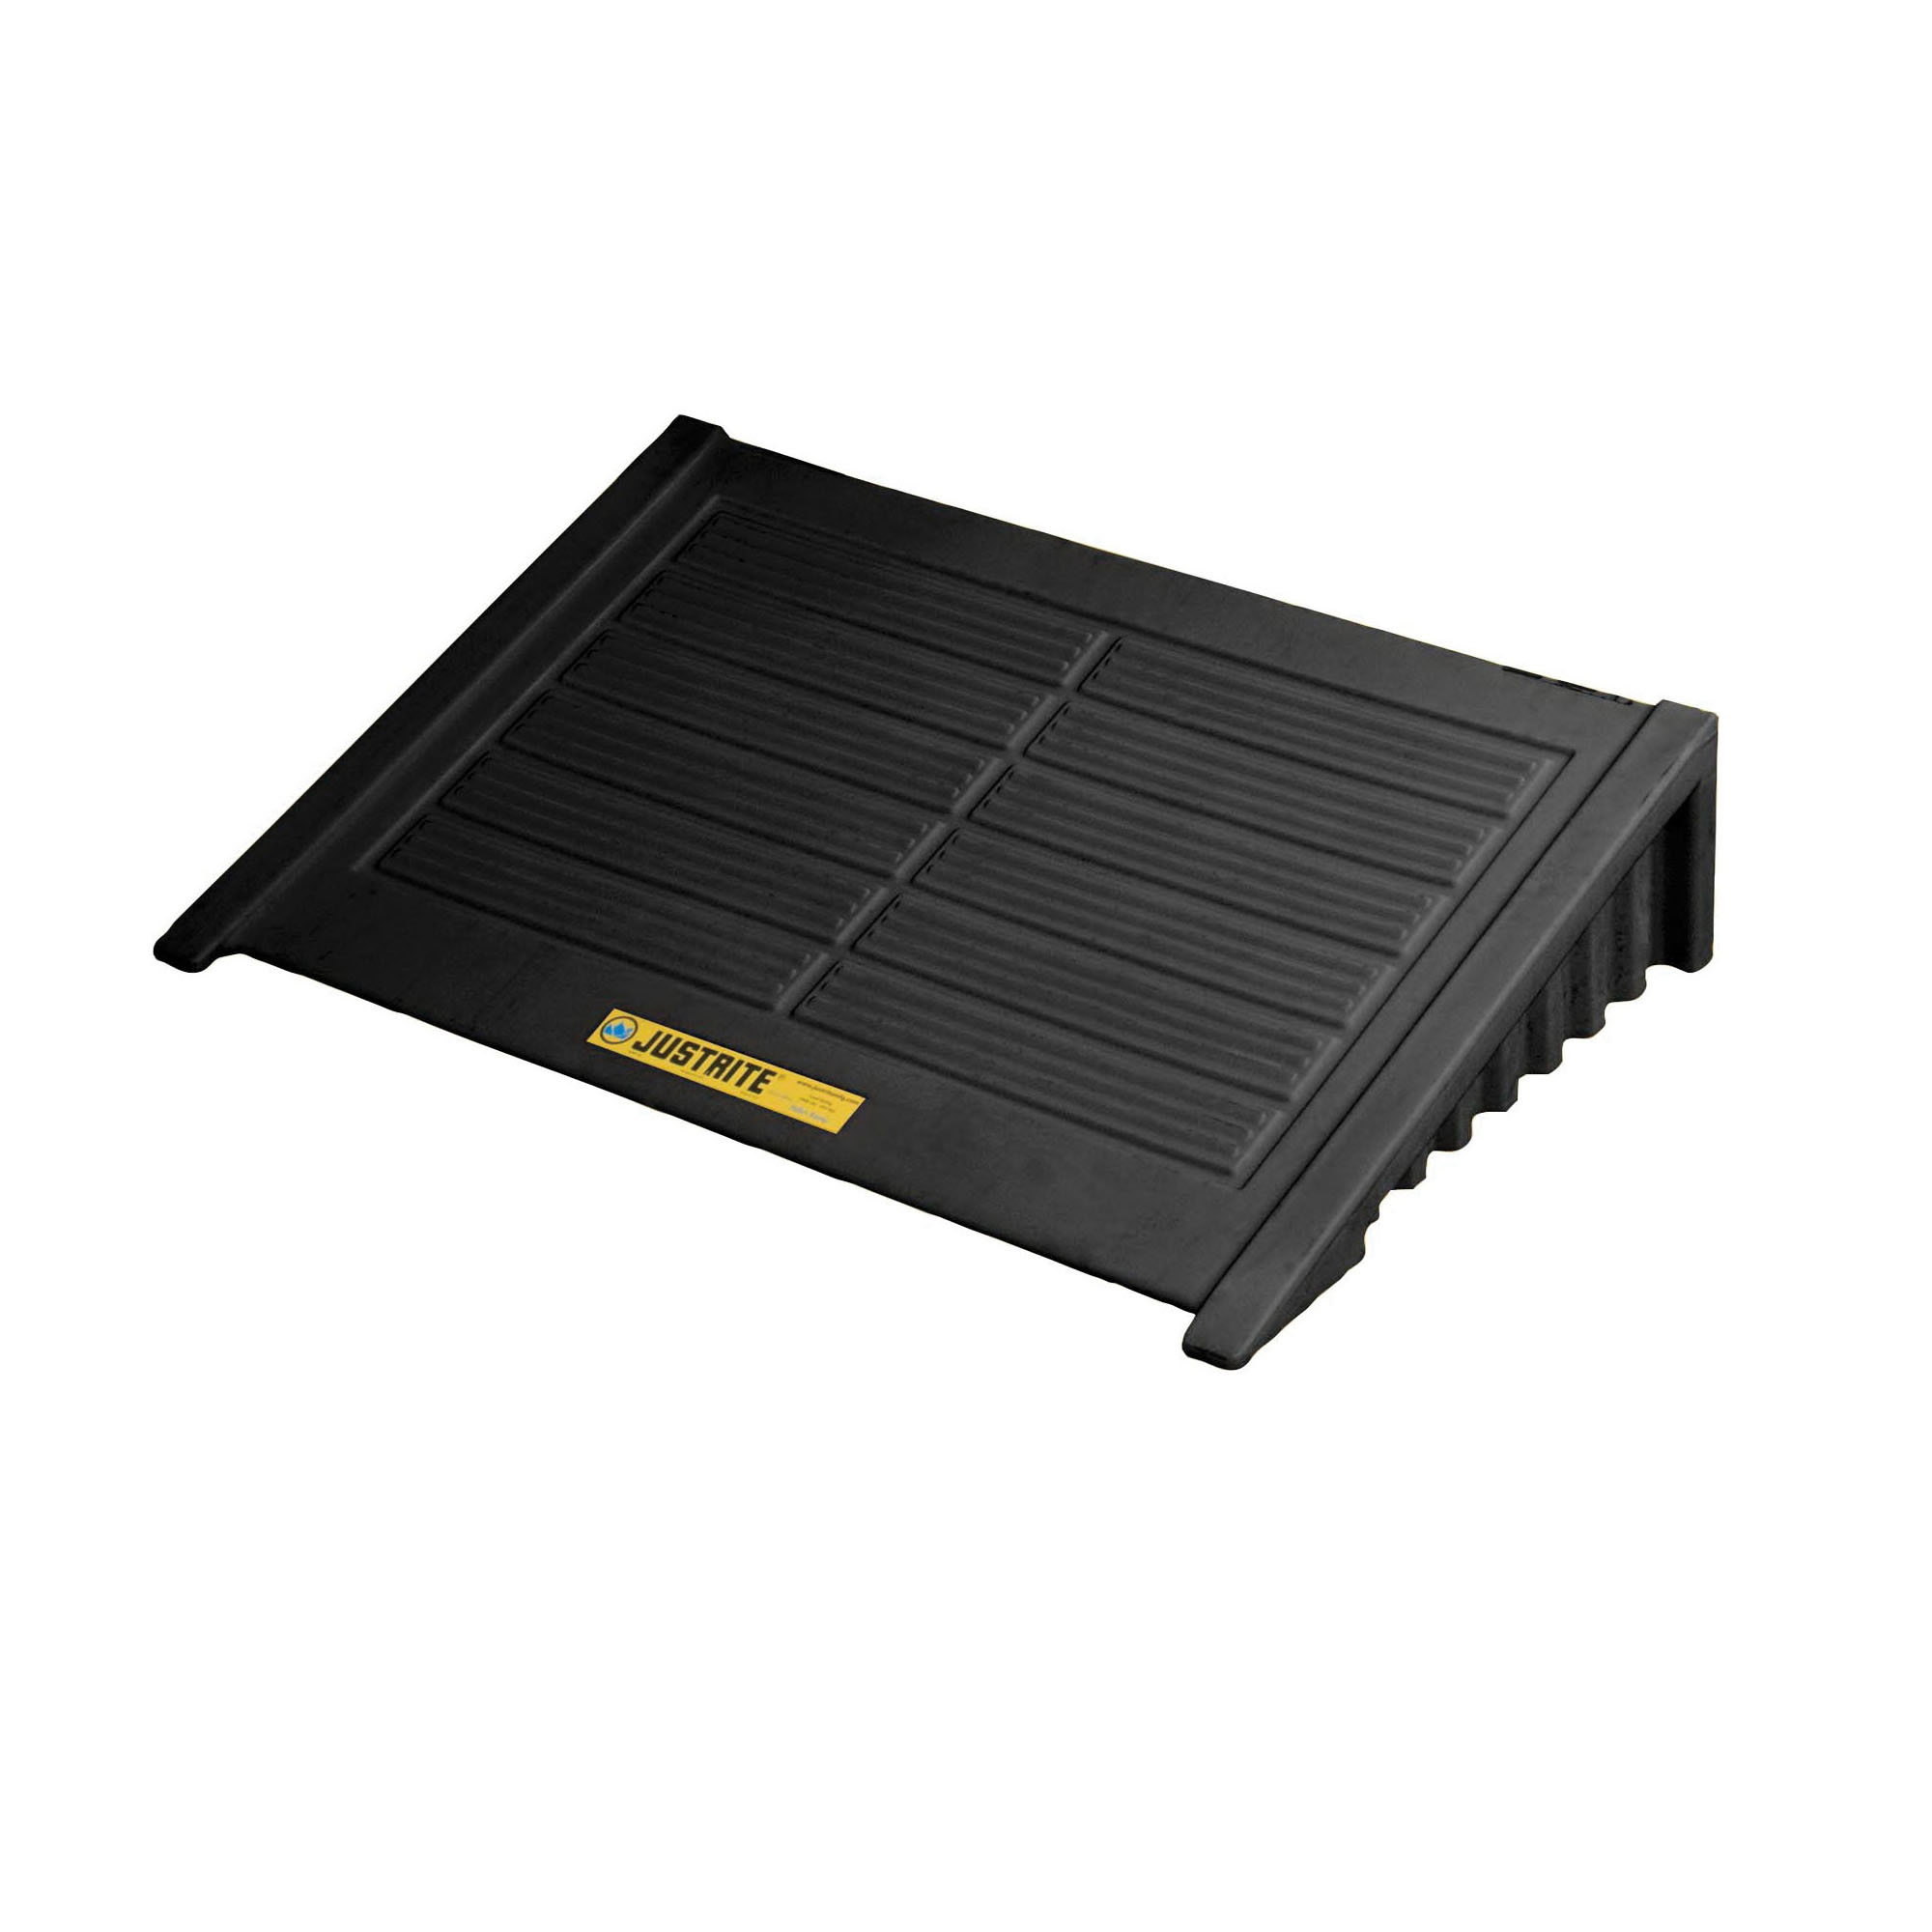 Justrite® 28688 Spill Pallet Ramp, 33 in L x 49 in W x 10-1/2 in H, 1000 lb Load, Recycled Polyethylene